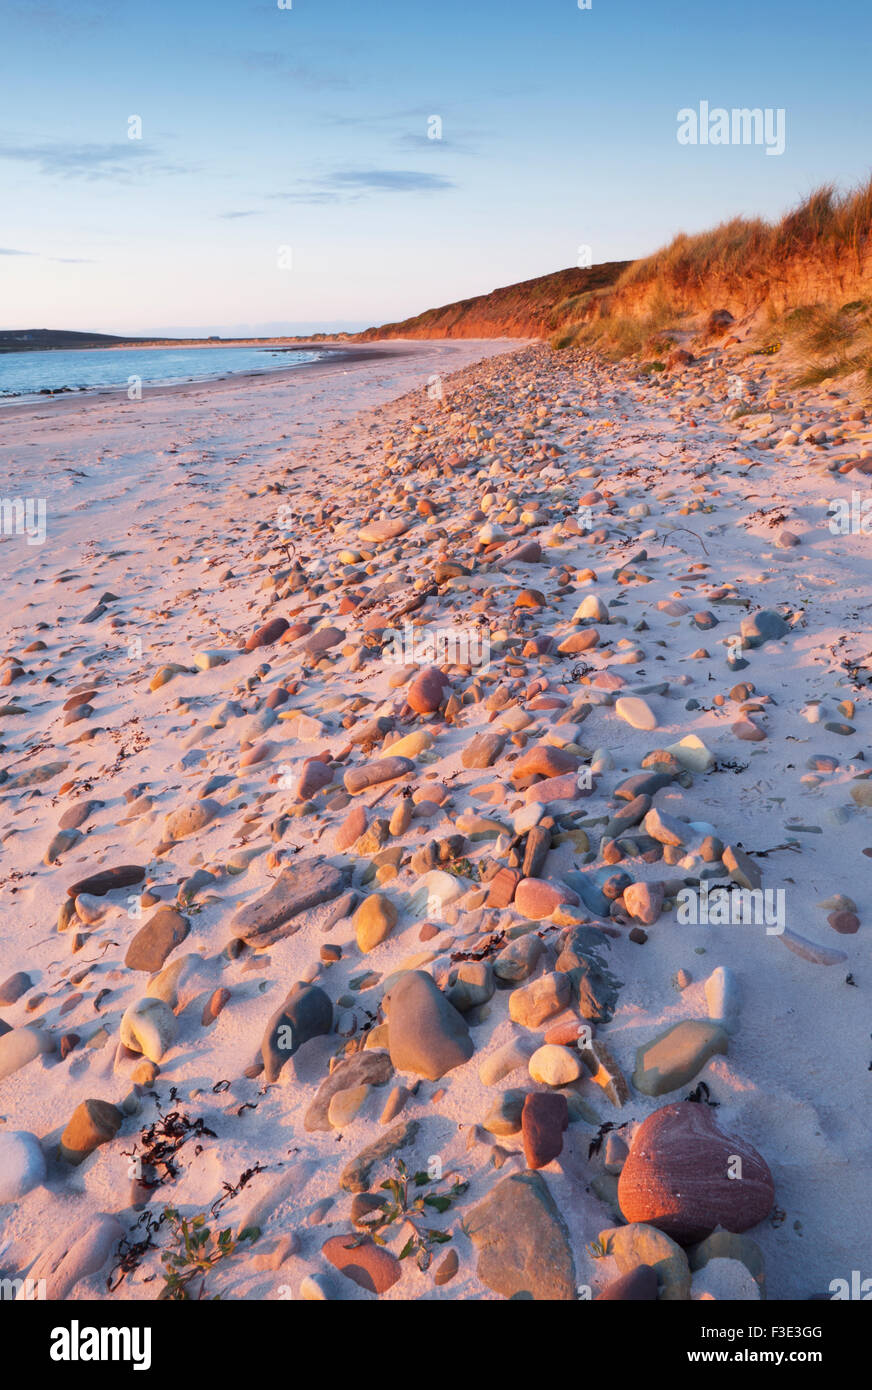 The Sands of Mussetter at sunset on the island of Eday, Orkney Islands, Scotland. Stock Photo